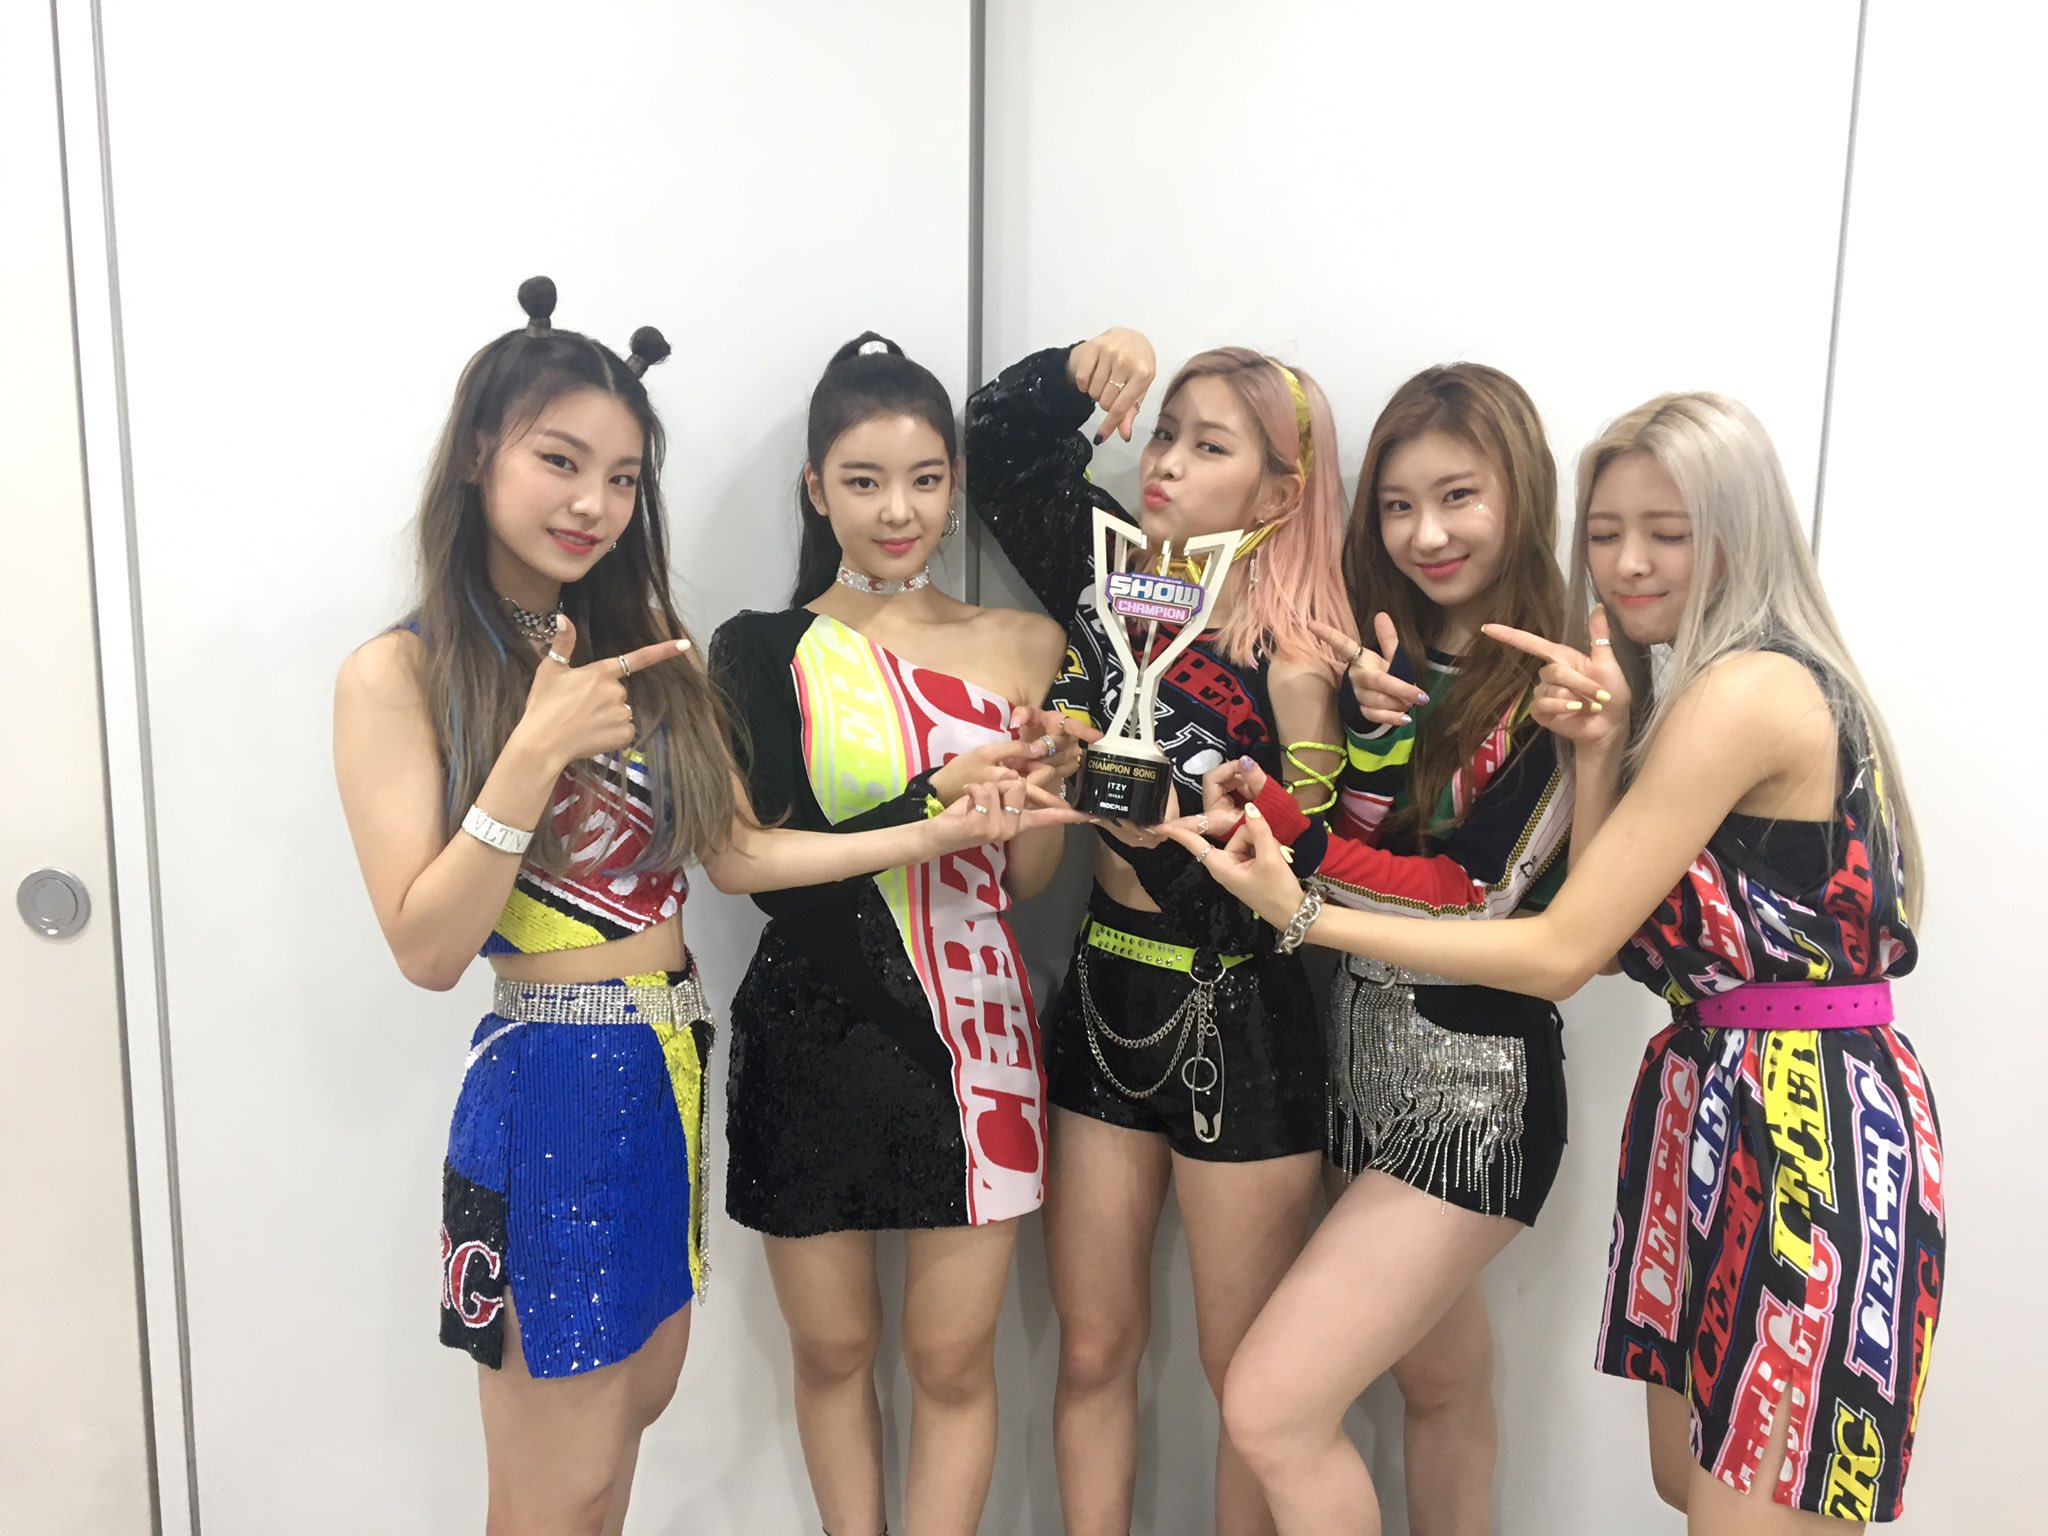 itzy, itzy profile, itzy facts, itzy age, itzy height, itzy debut, itzy rookie award, itzy jyp